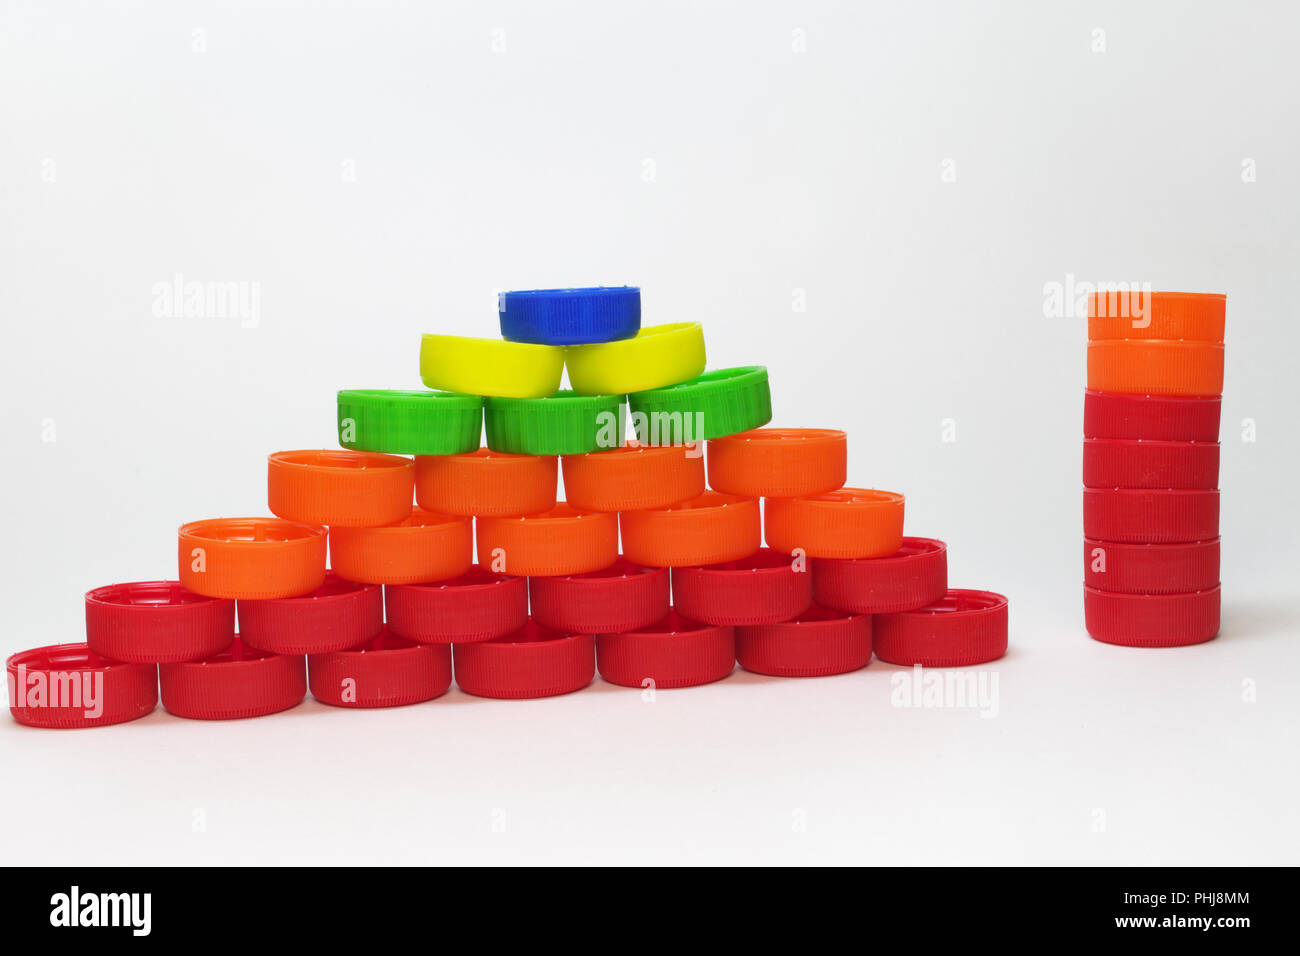 pyramid made out of plastic ribbed bottle caps and column of the same caps, stowed in the same height. reuse and recycle - Stock Image